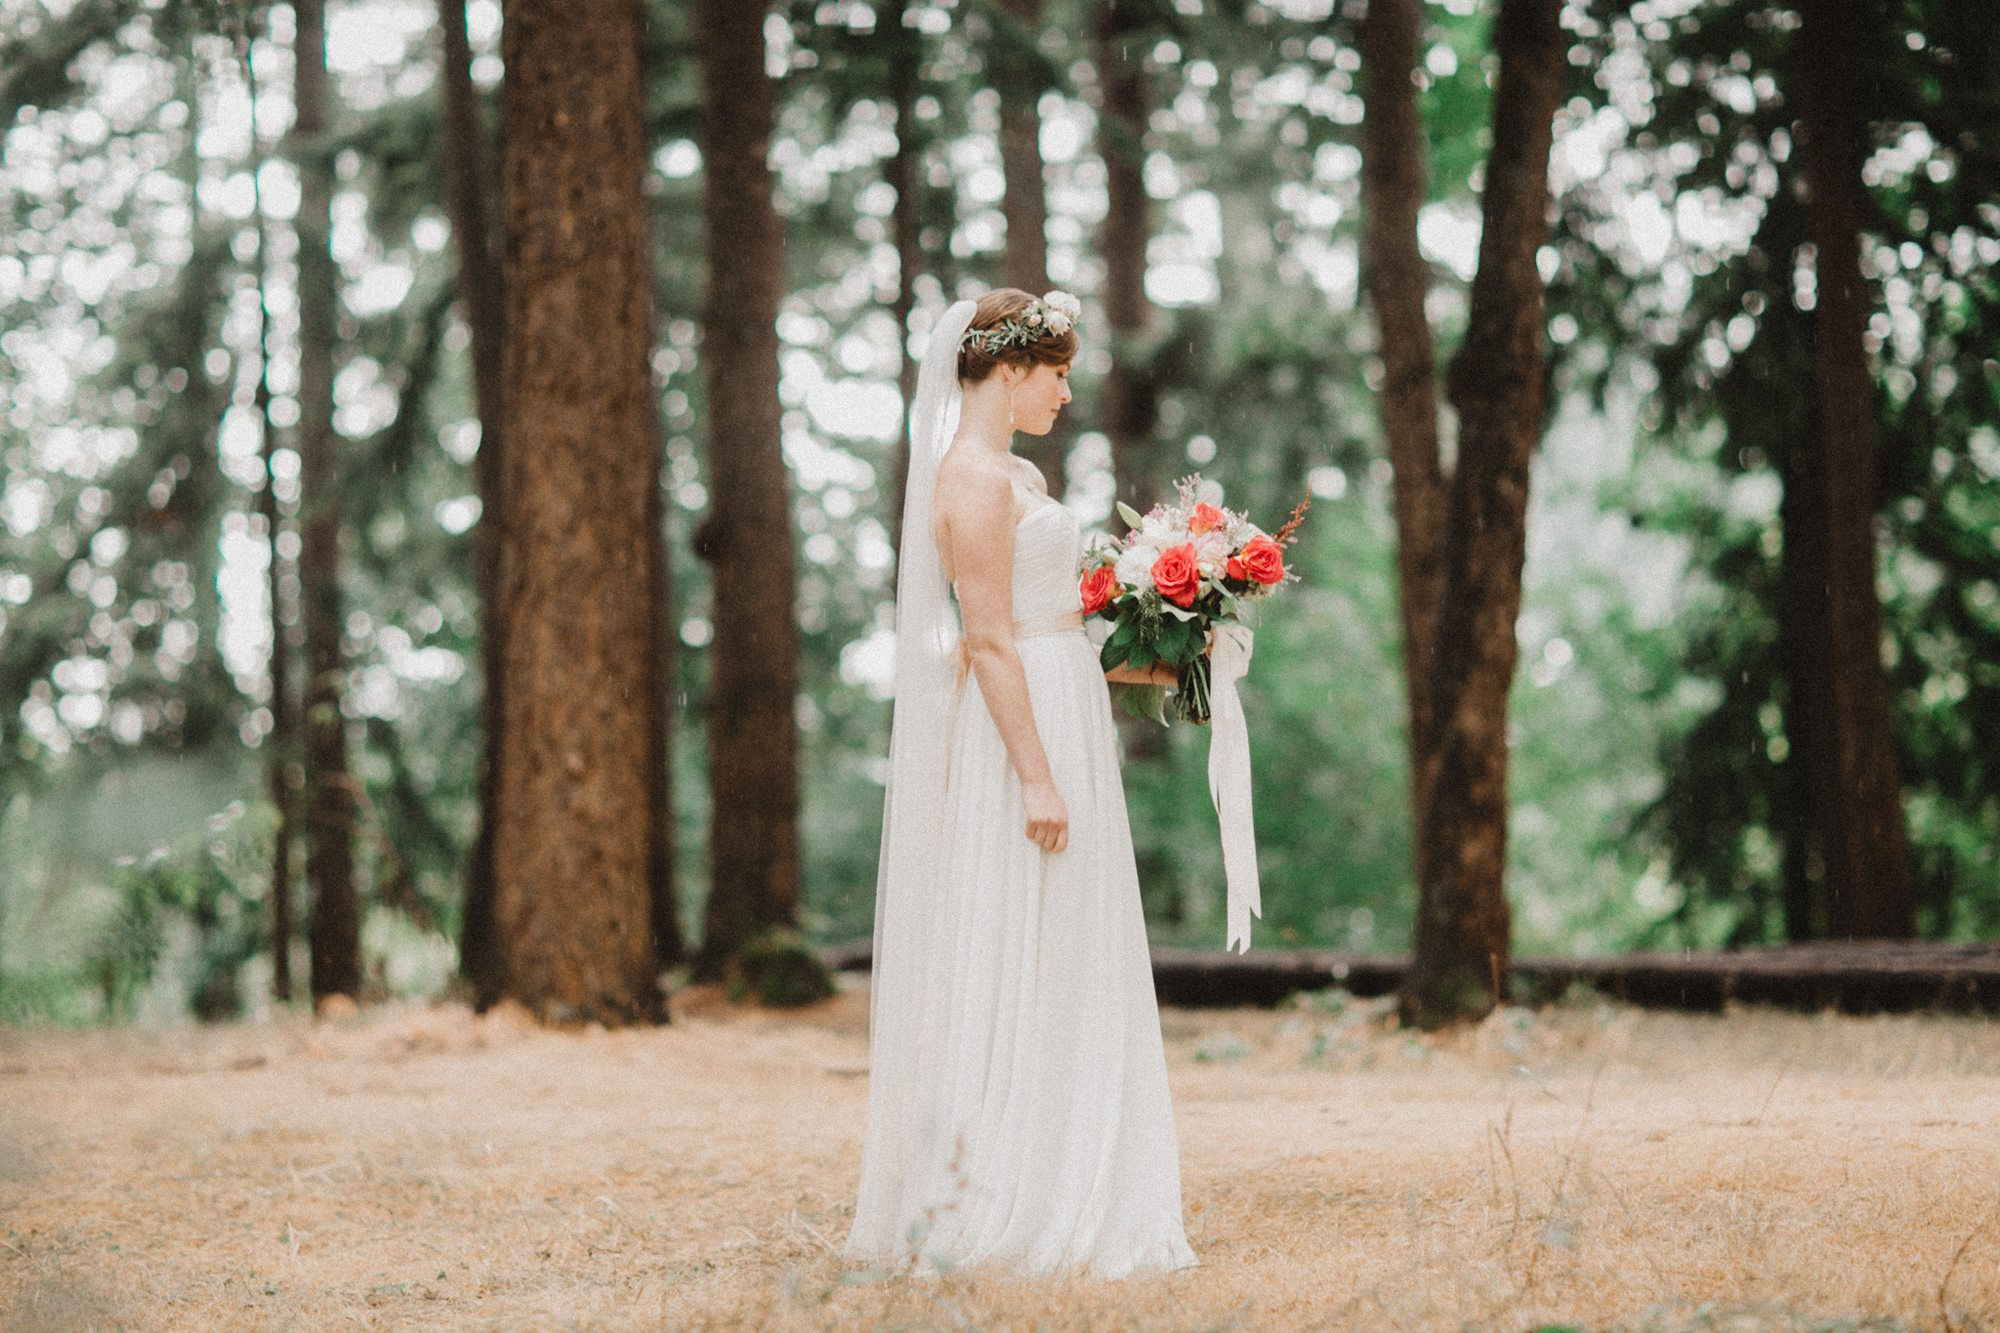 344-abbotsford-wedding-photographer